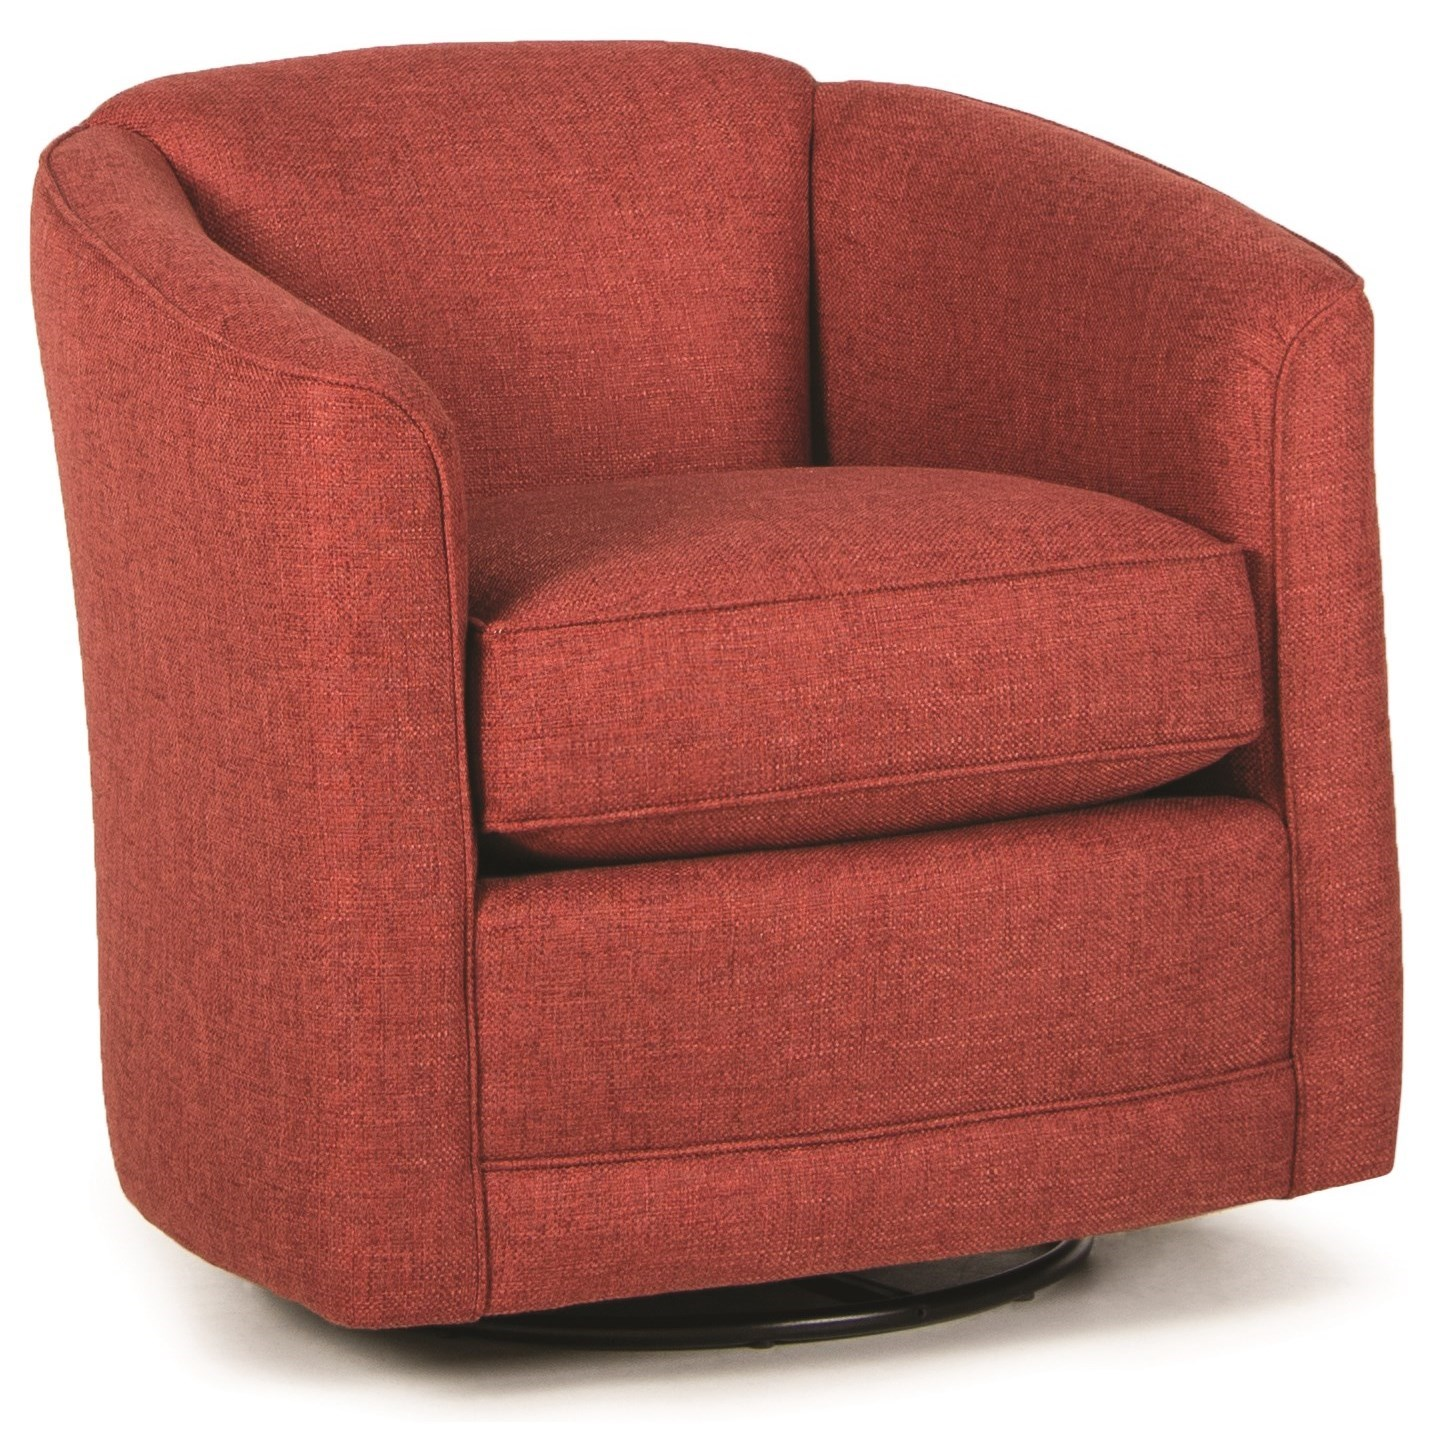 506 Swivel Chair by Smith Brothers at Mueller Furniture